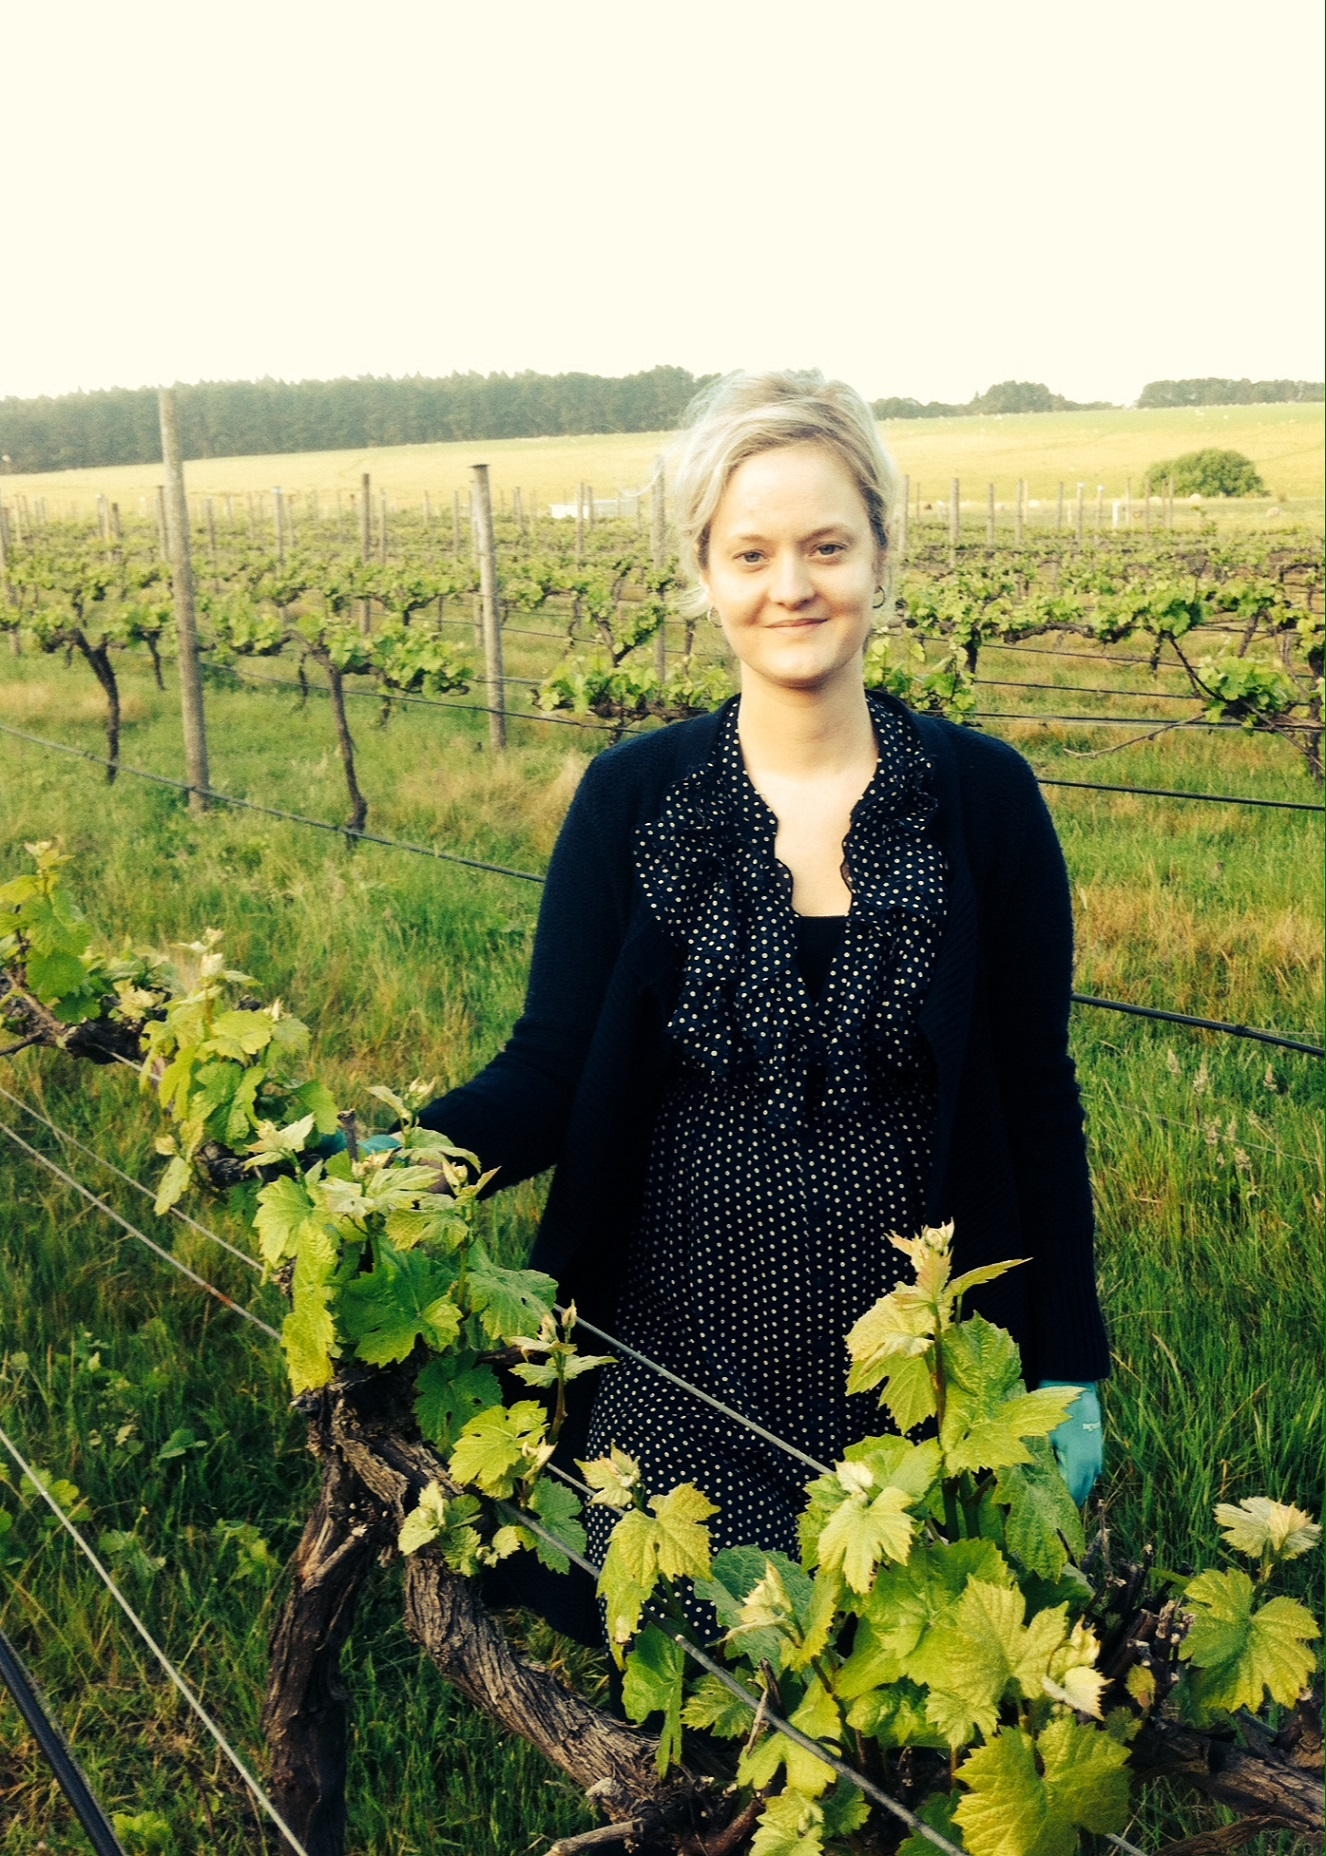 Pic of Michelle in her vineyard